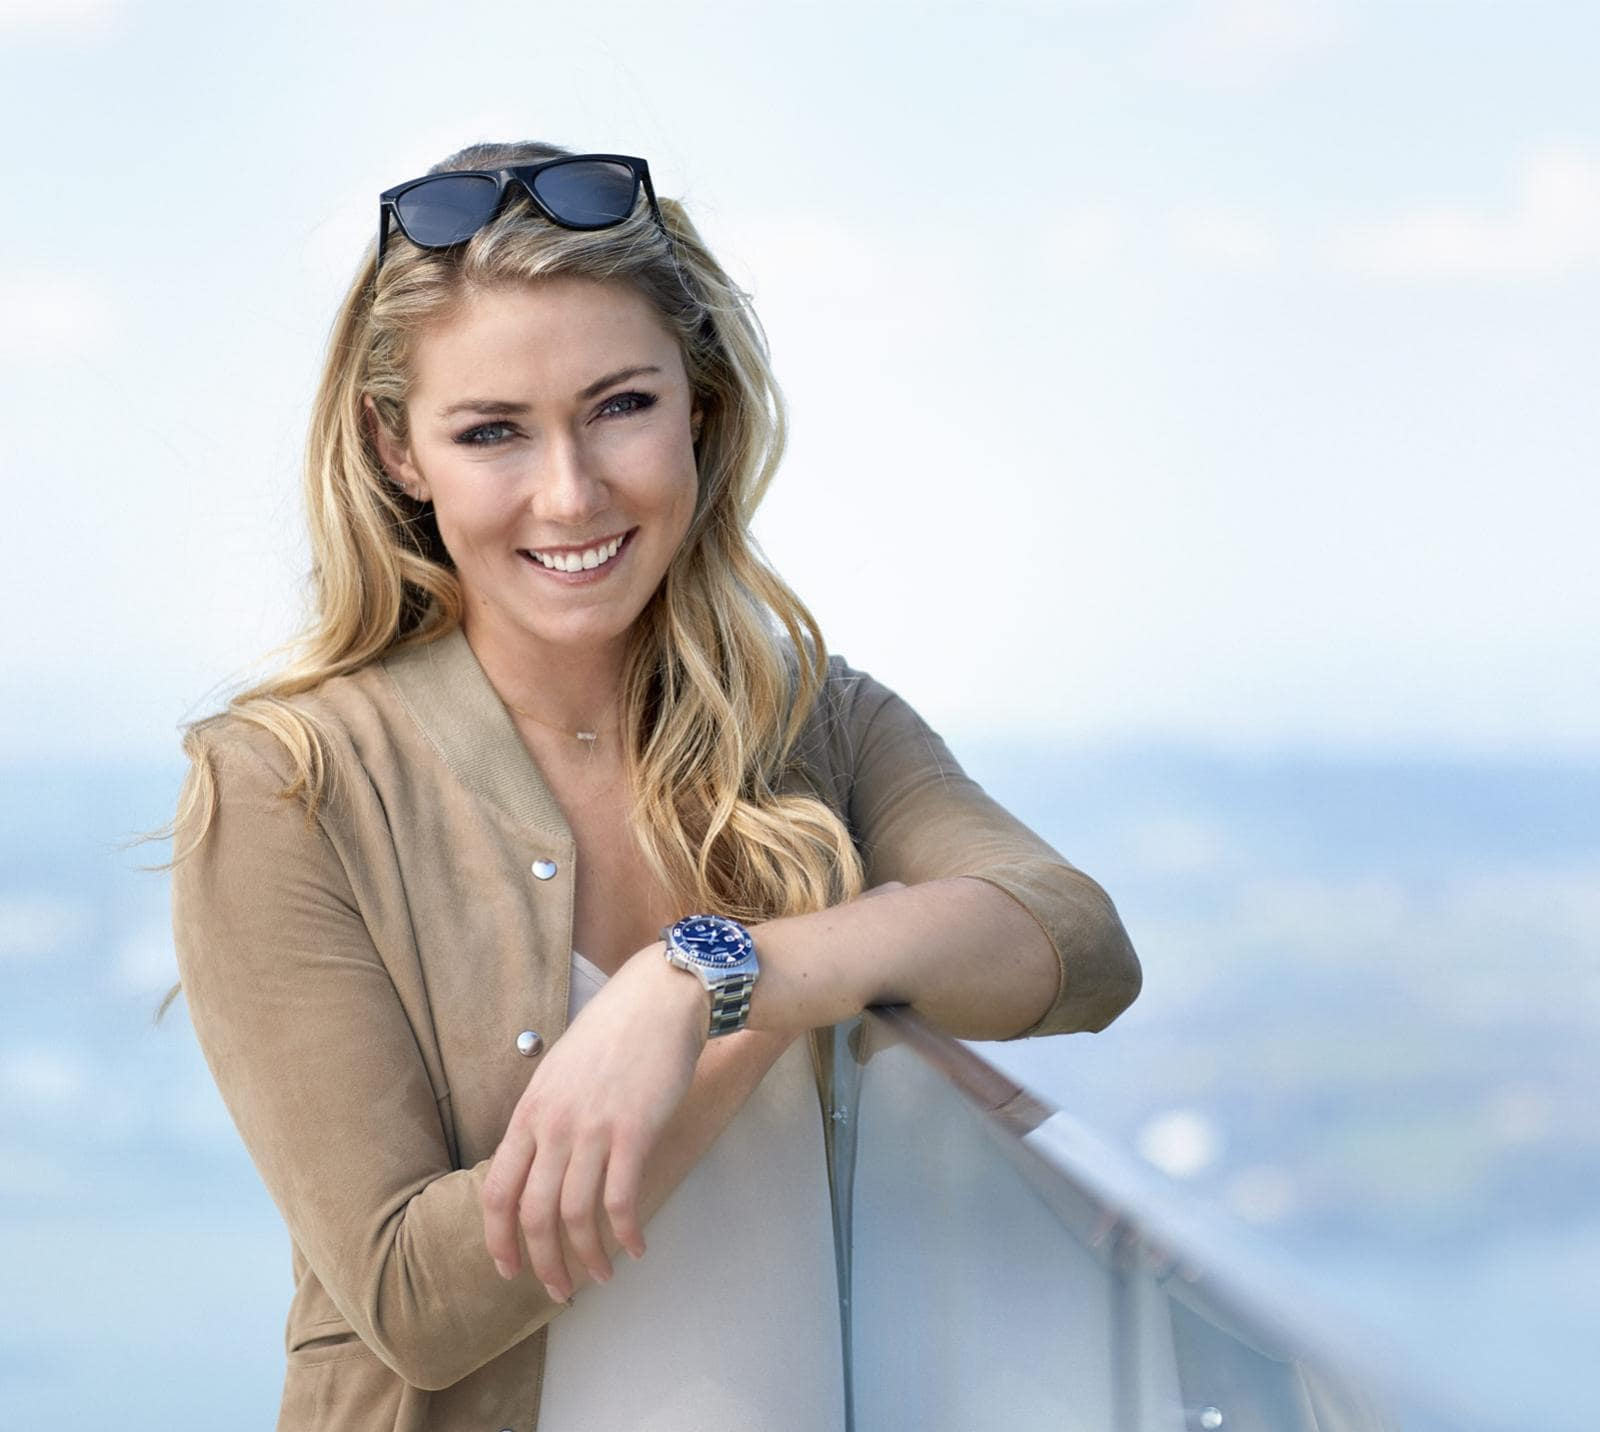 Mikaela Shiffrin ambassador of the Conquest Classic watch